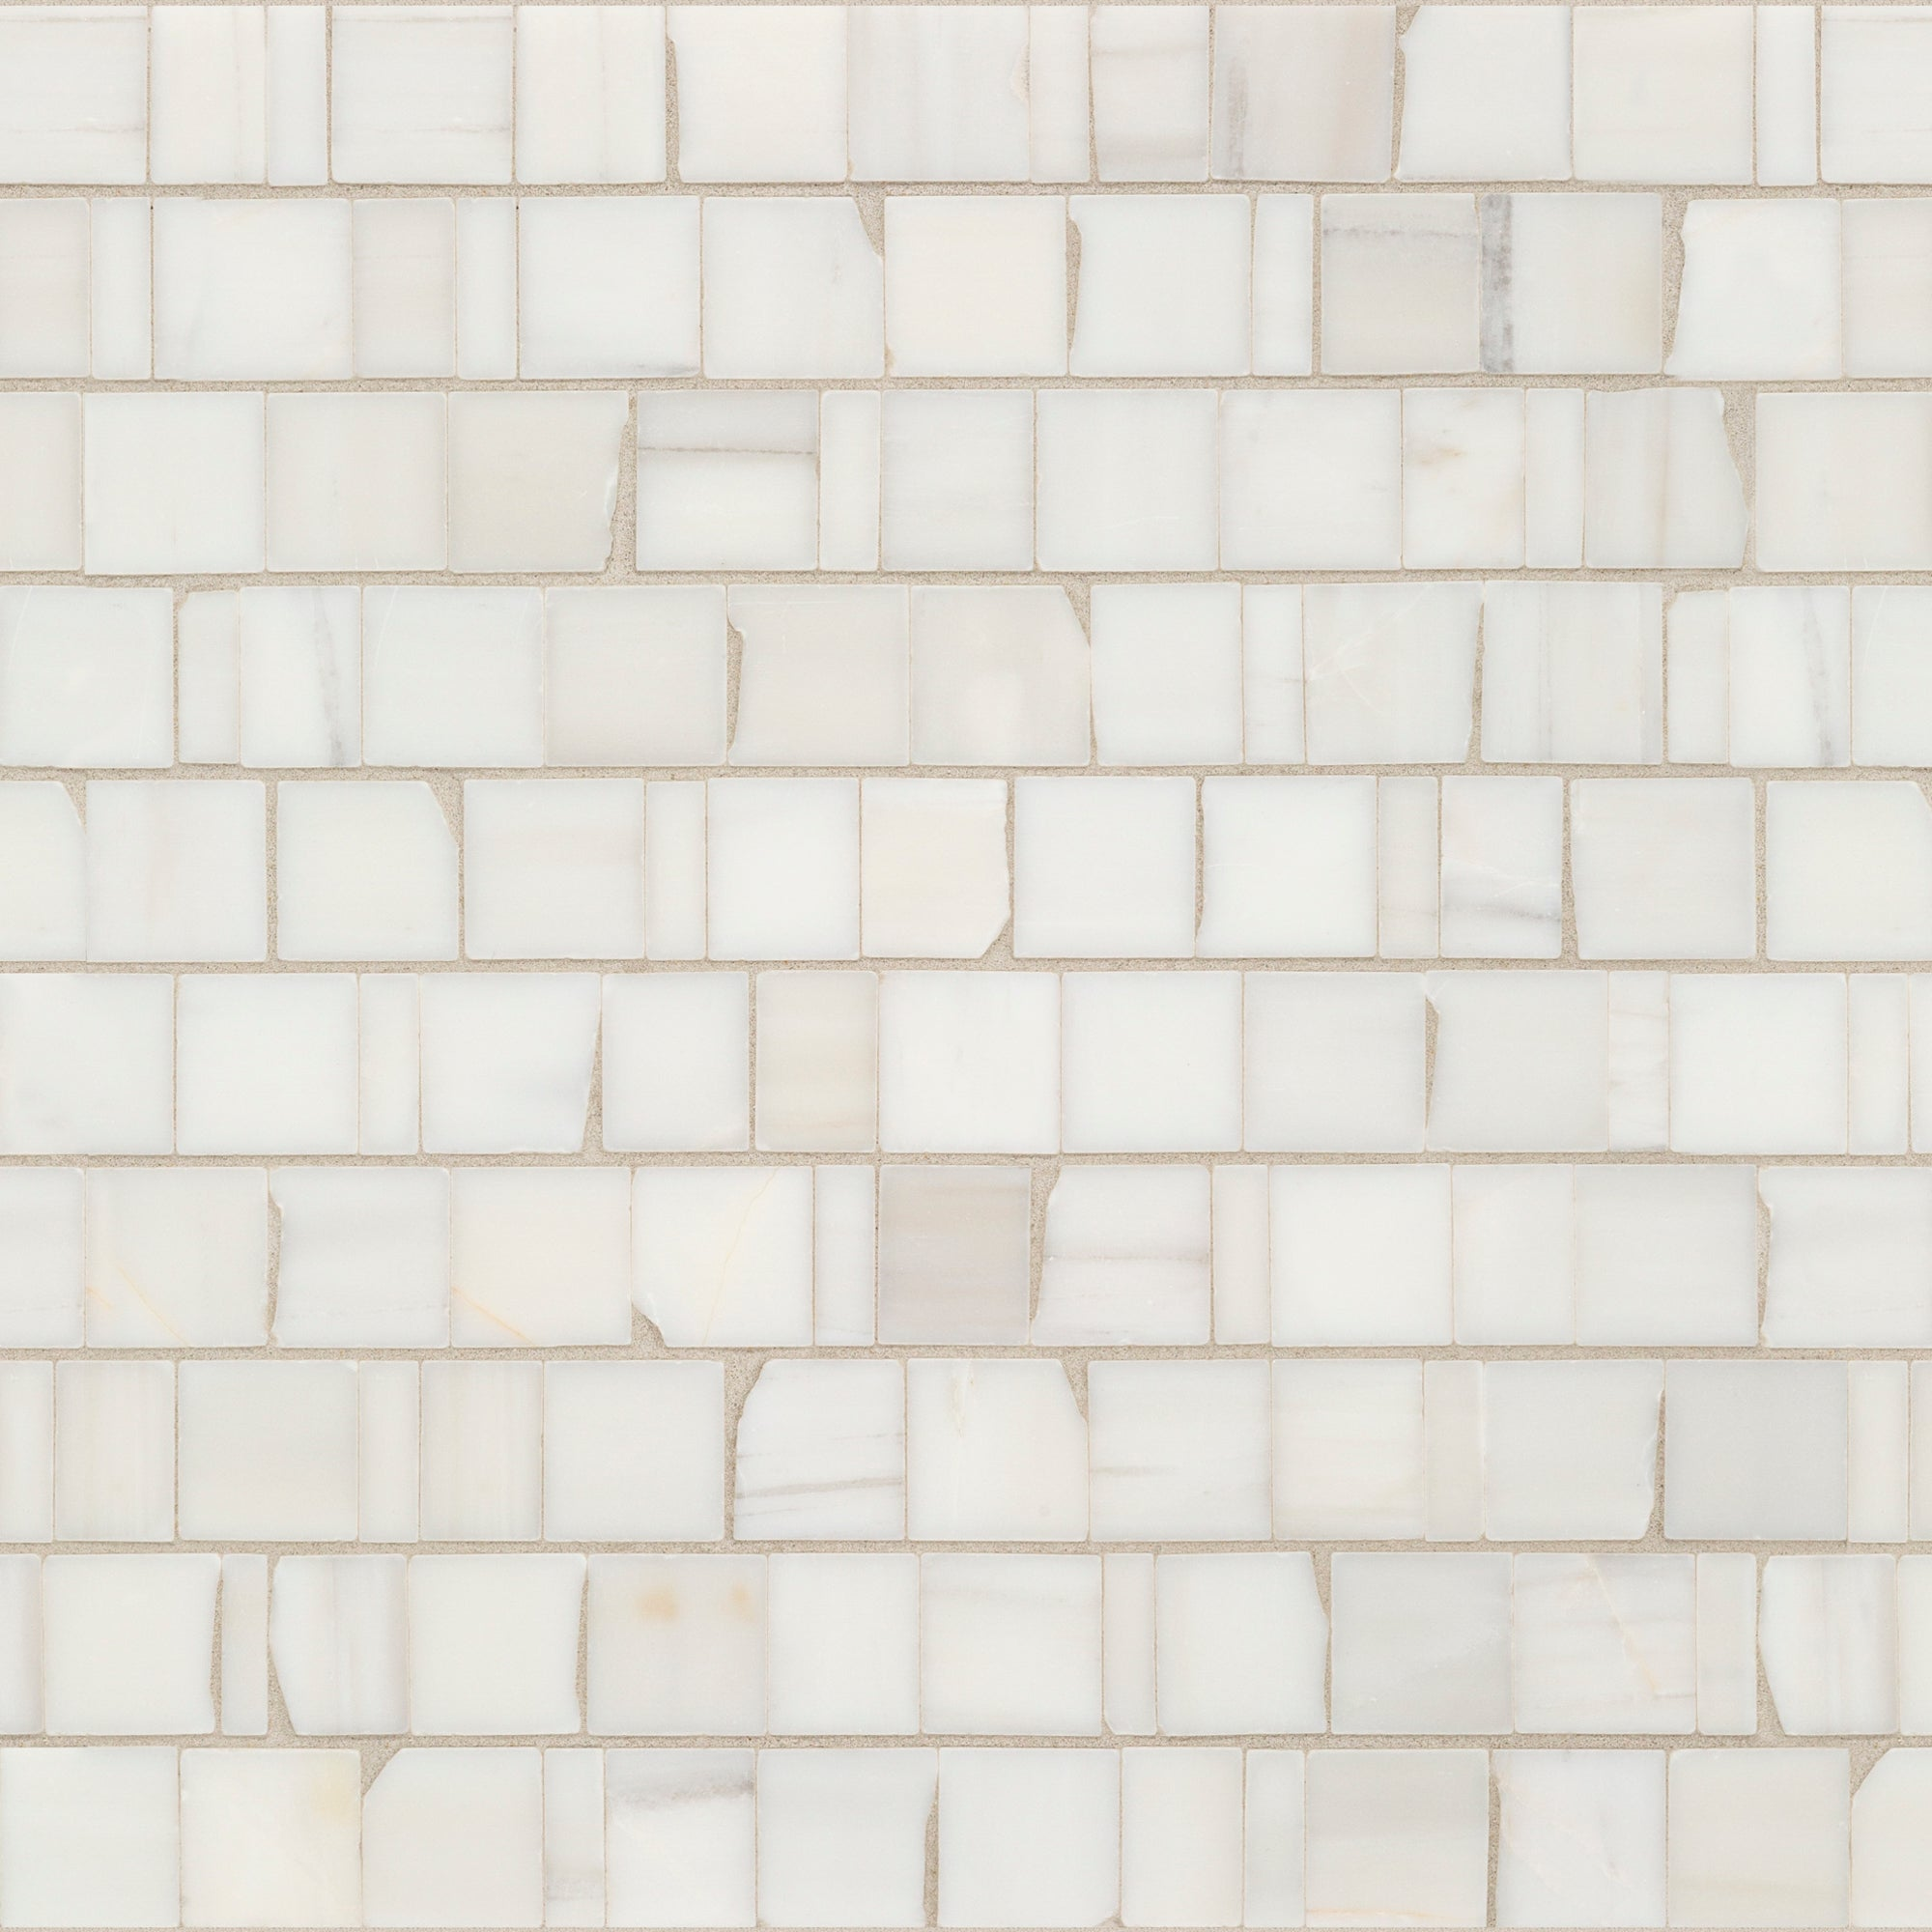 Mosaic Bianco Dolomiti Dolomite Swatch Card  Polished Samples Broken Joint 3.0cm product photo